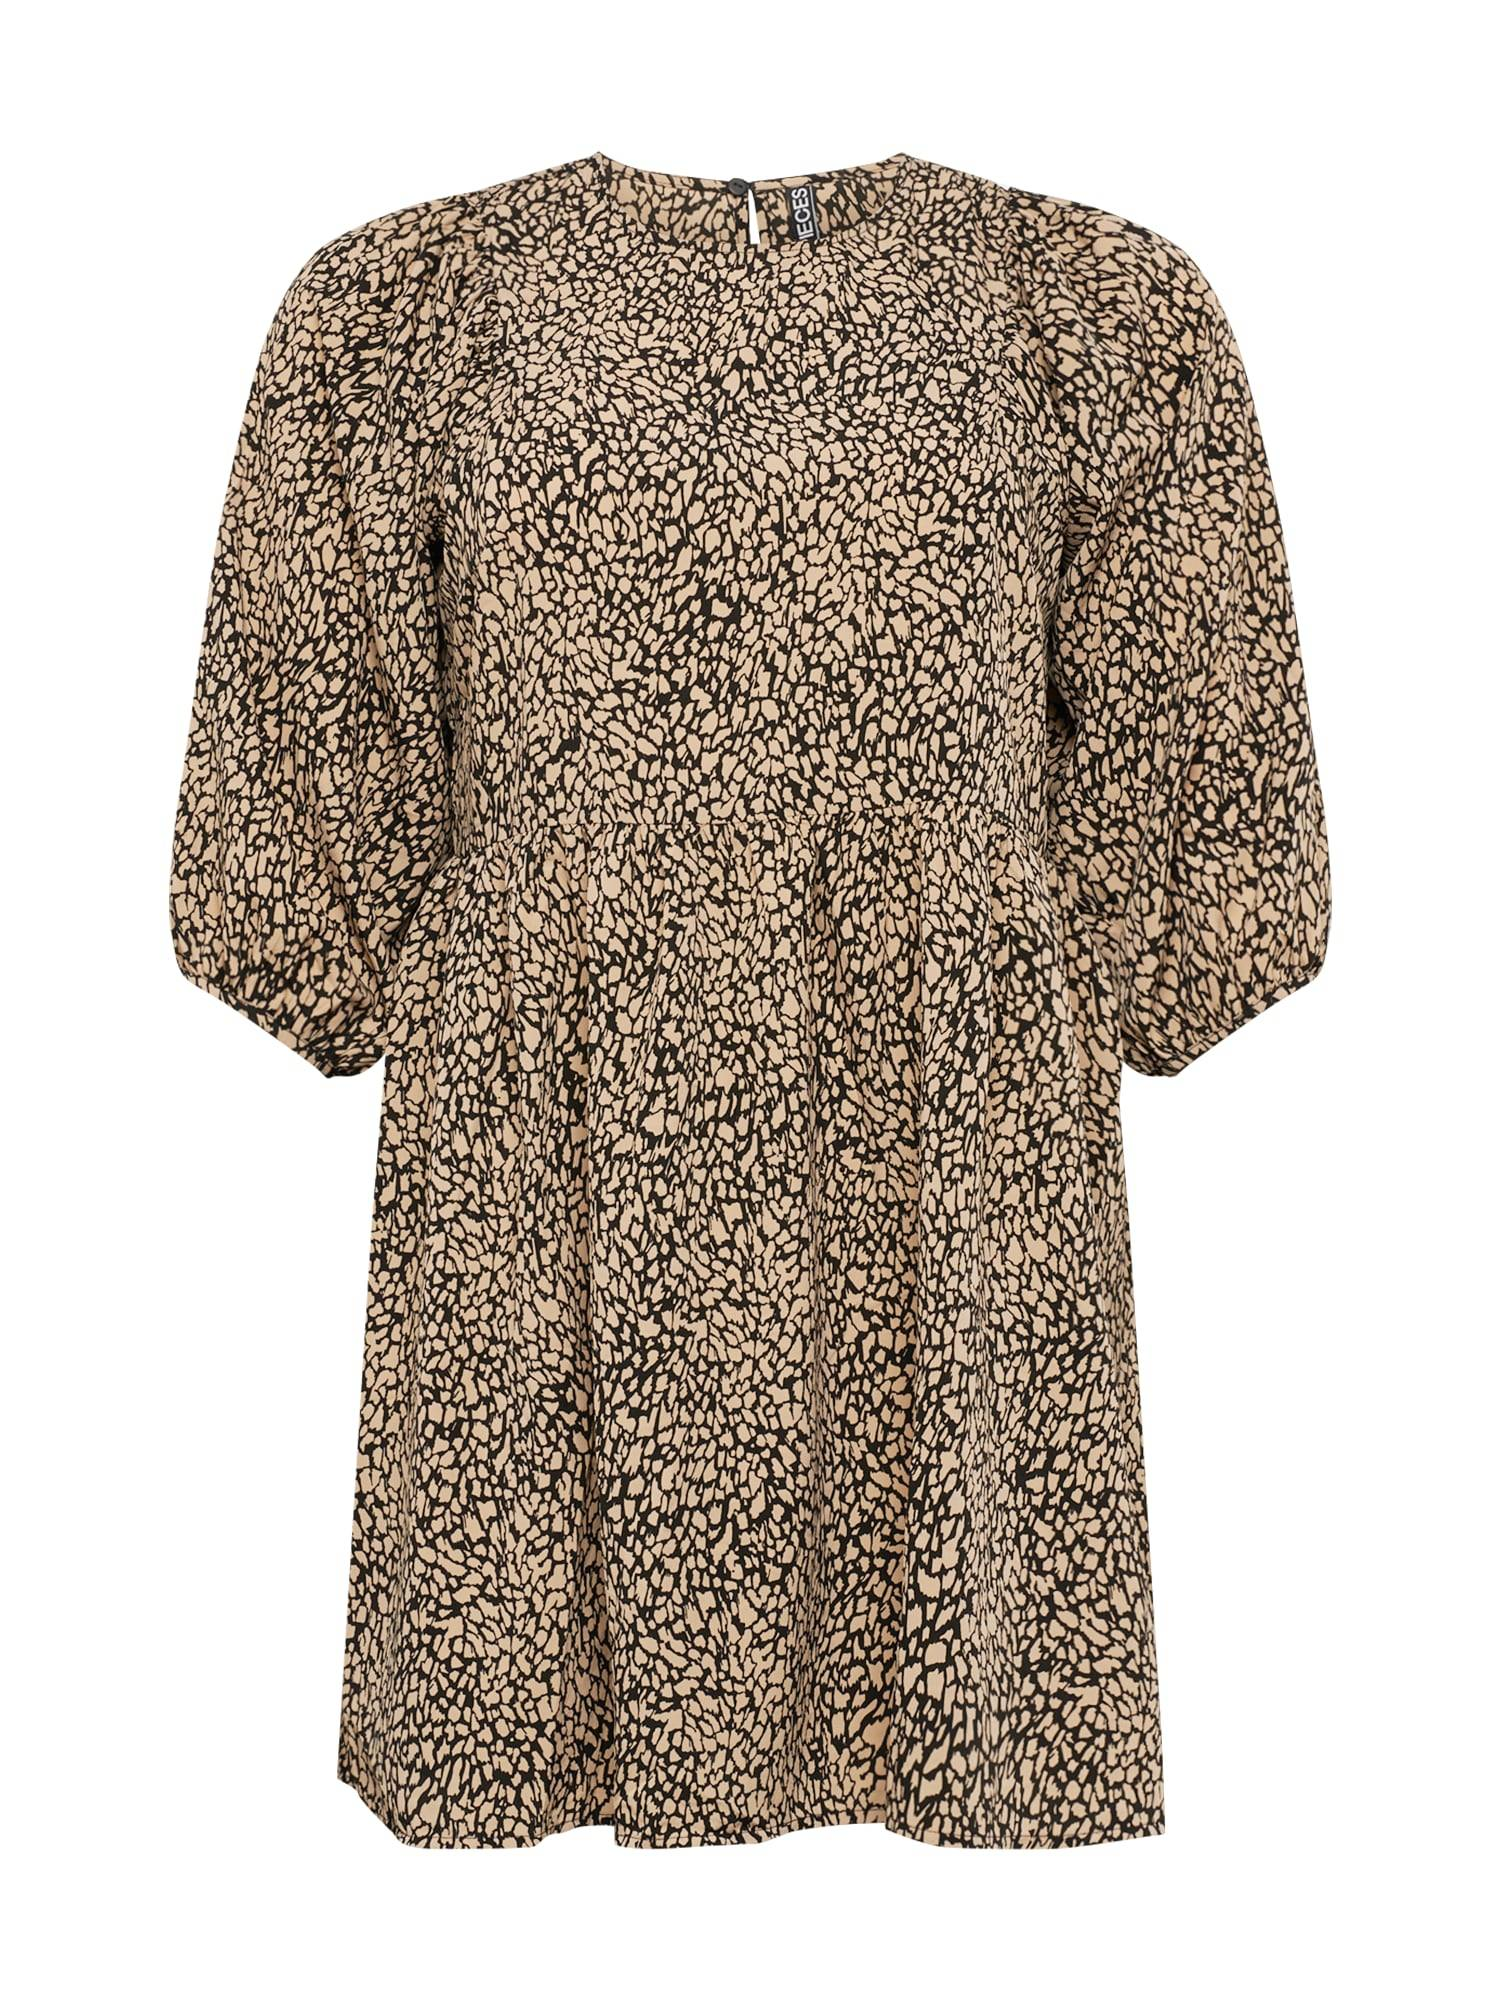 PIECES (Curve) Robe 'GILBERTA'  - Beige - Taille: 54 - female